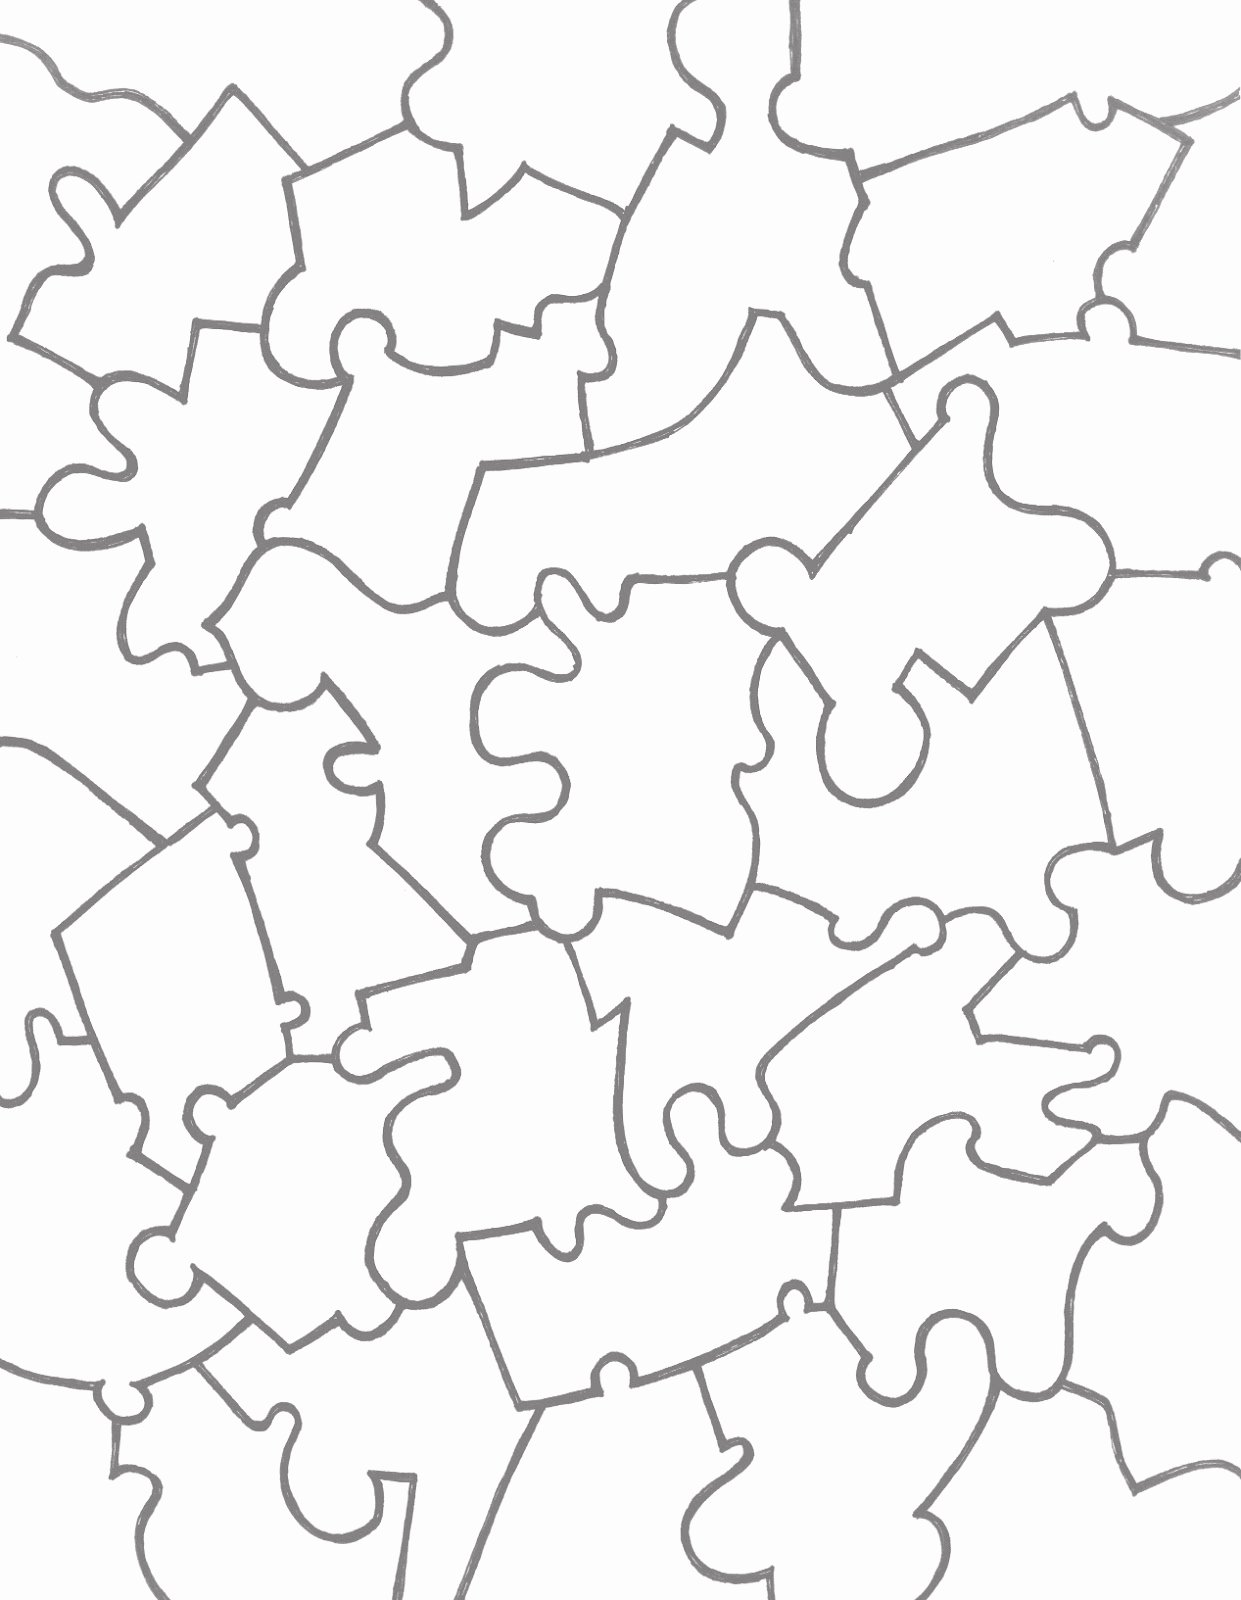 Puzzle Pieces Template for Word Lovely Paper Jigsaw Puzzle Templates